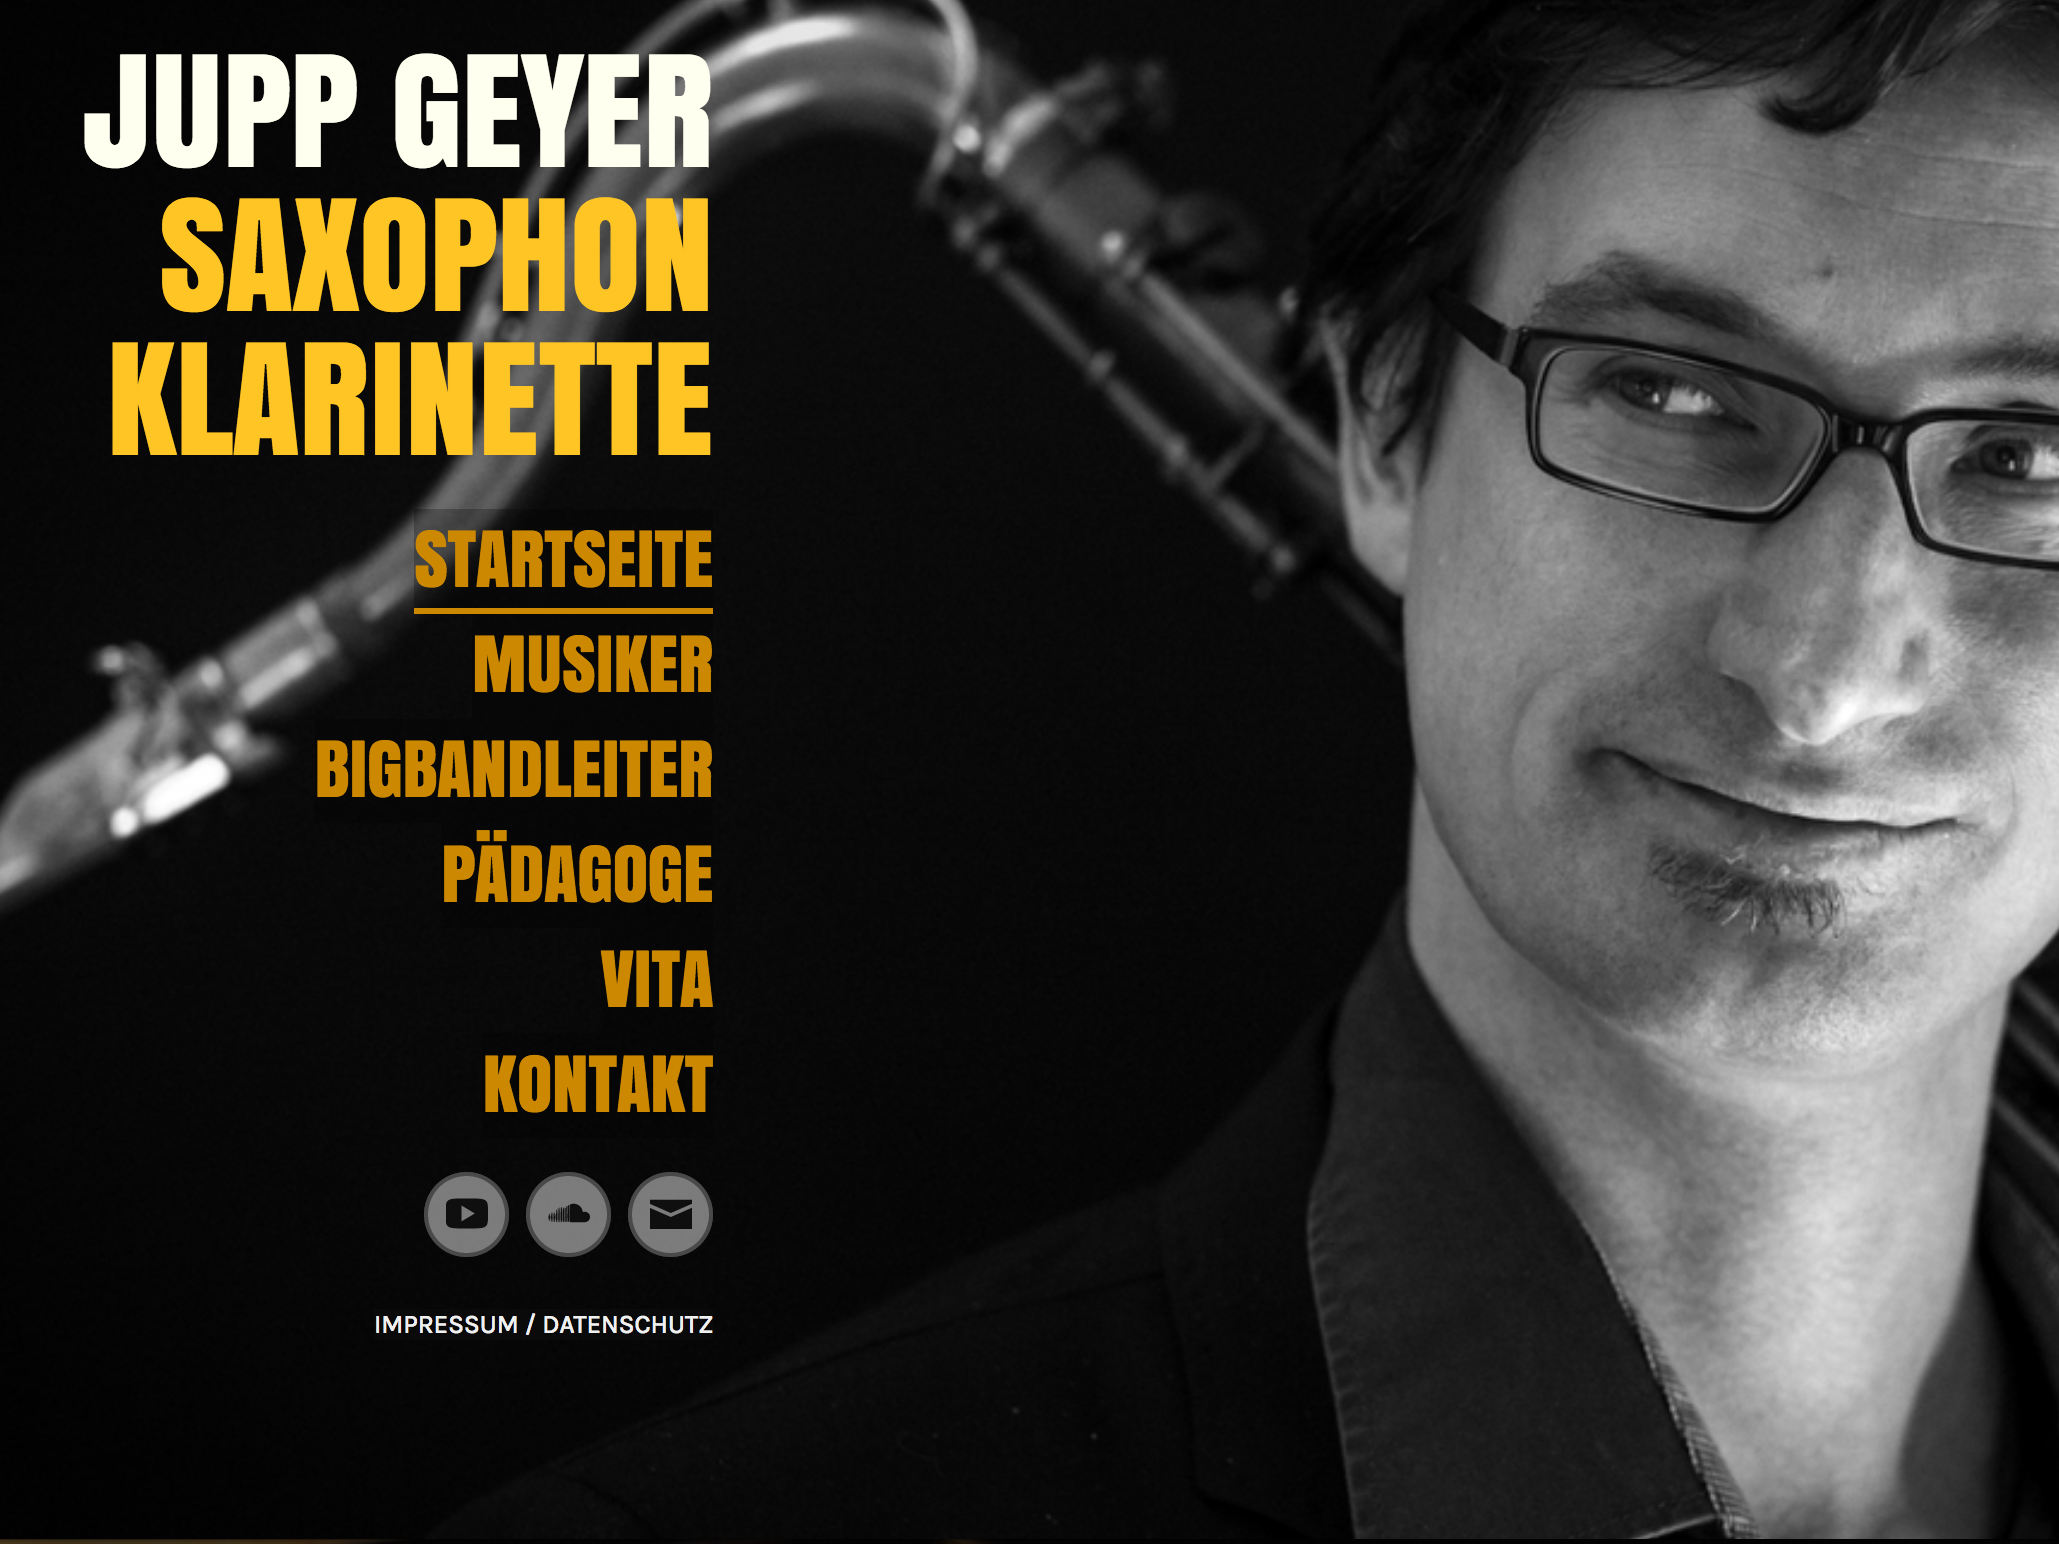 Website juppgeyer.de